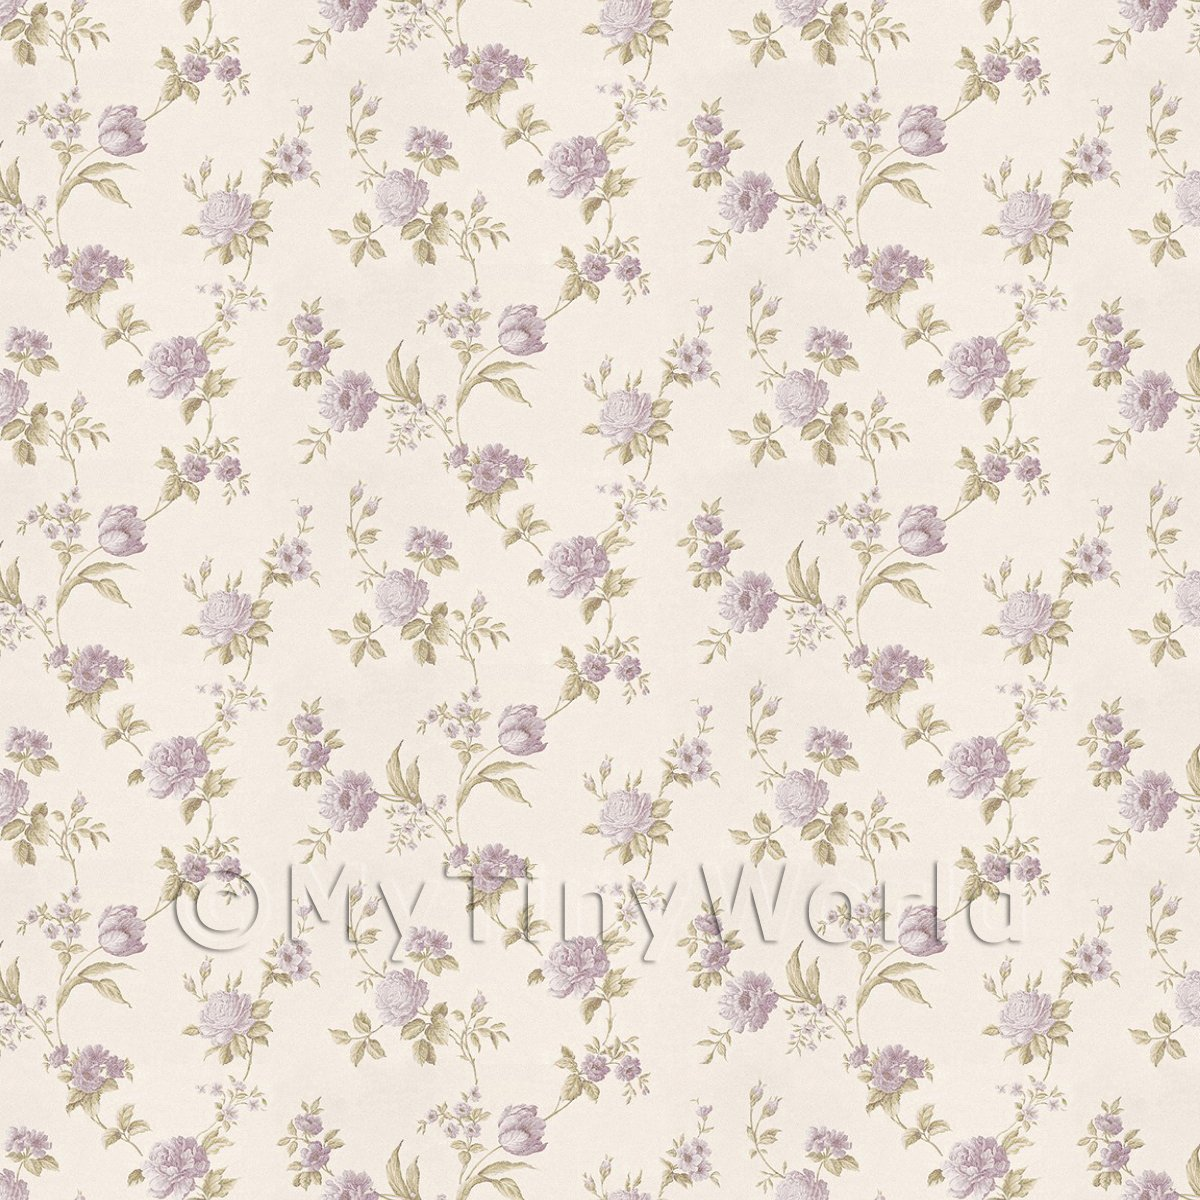 Pack of 5 Dolls House Mixed Violet Flowers On White Wallpaper Sheets